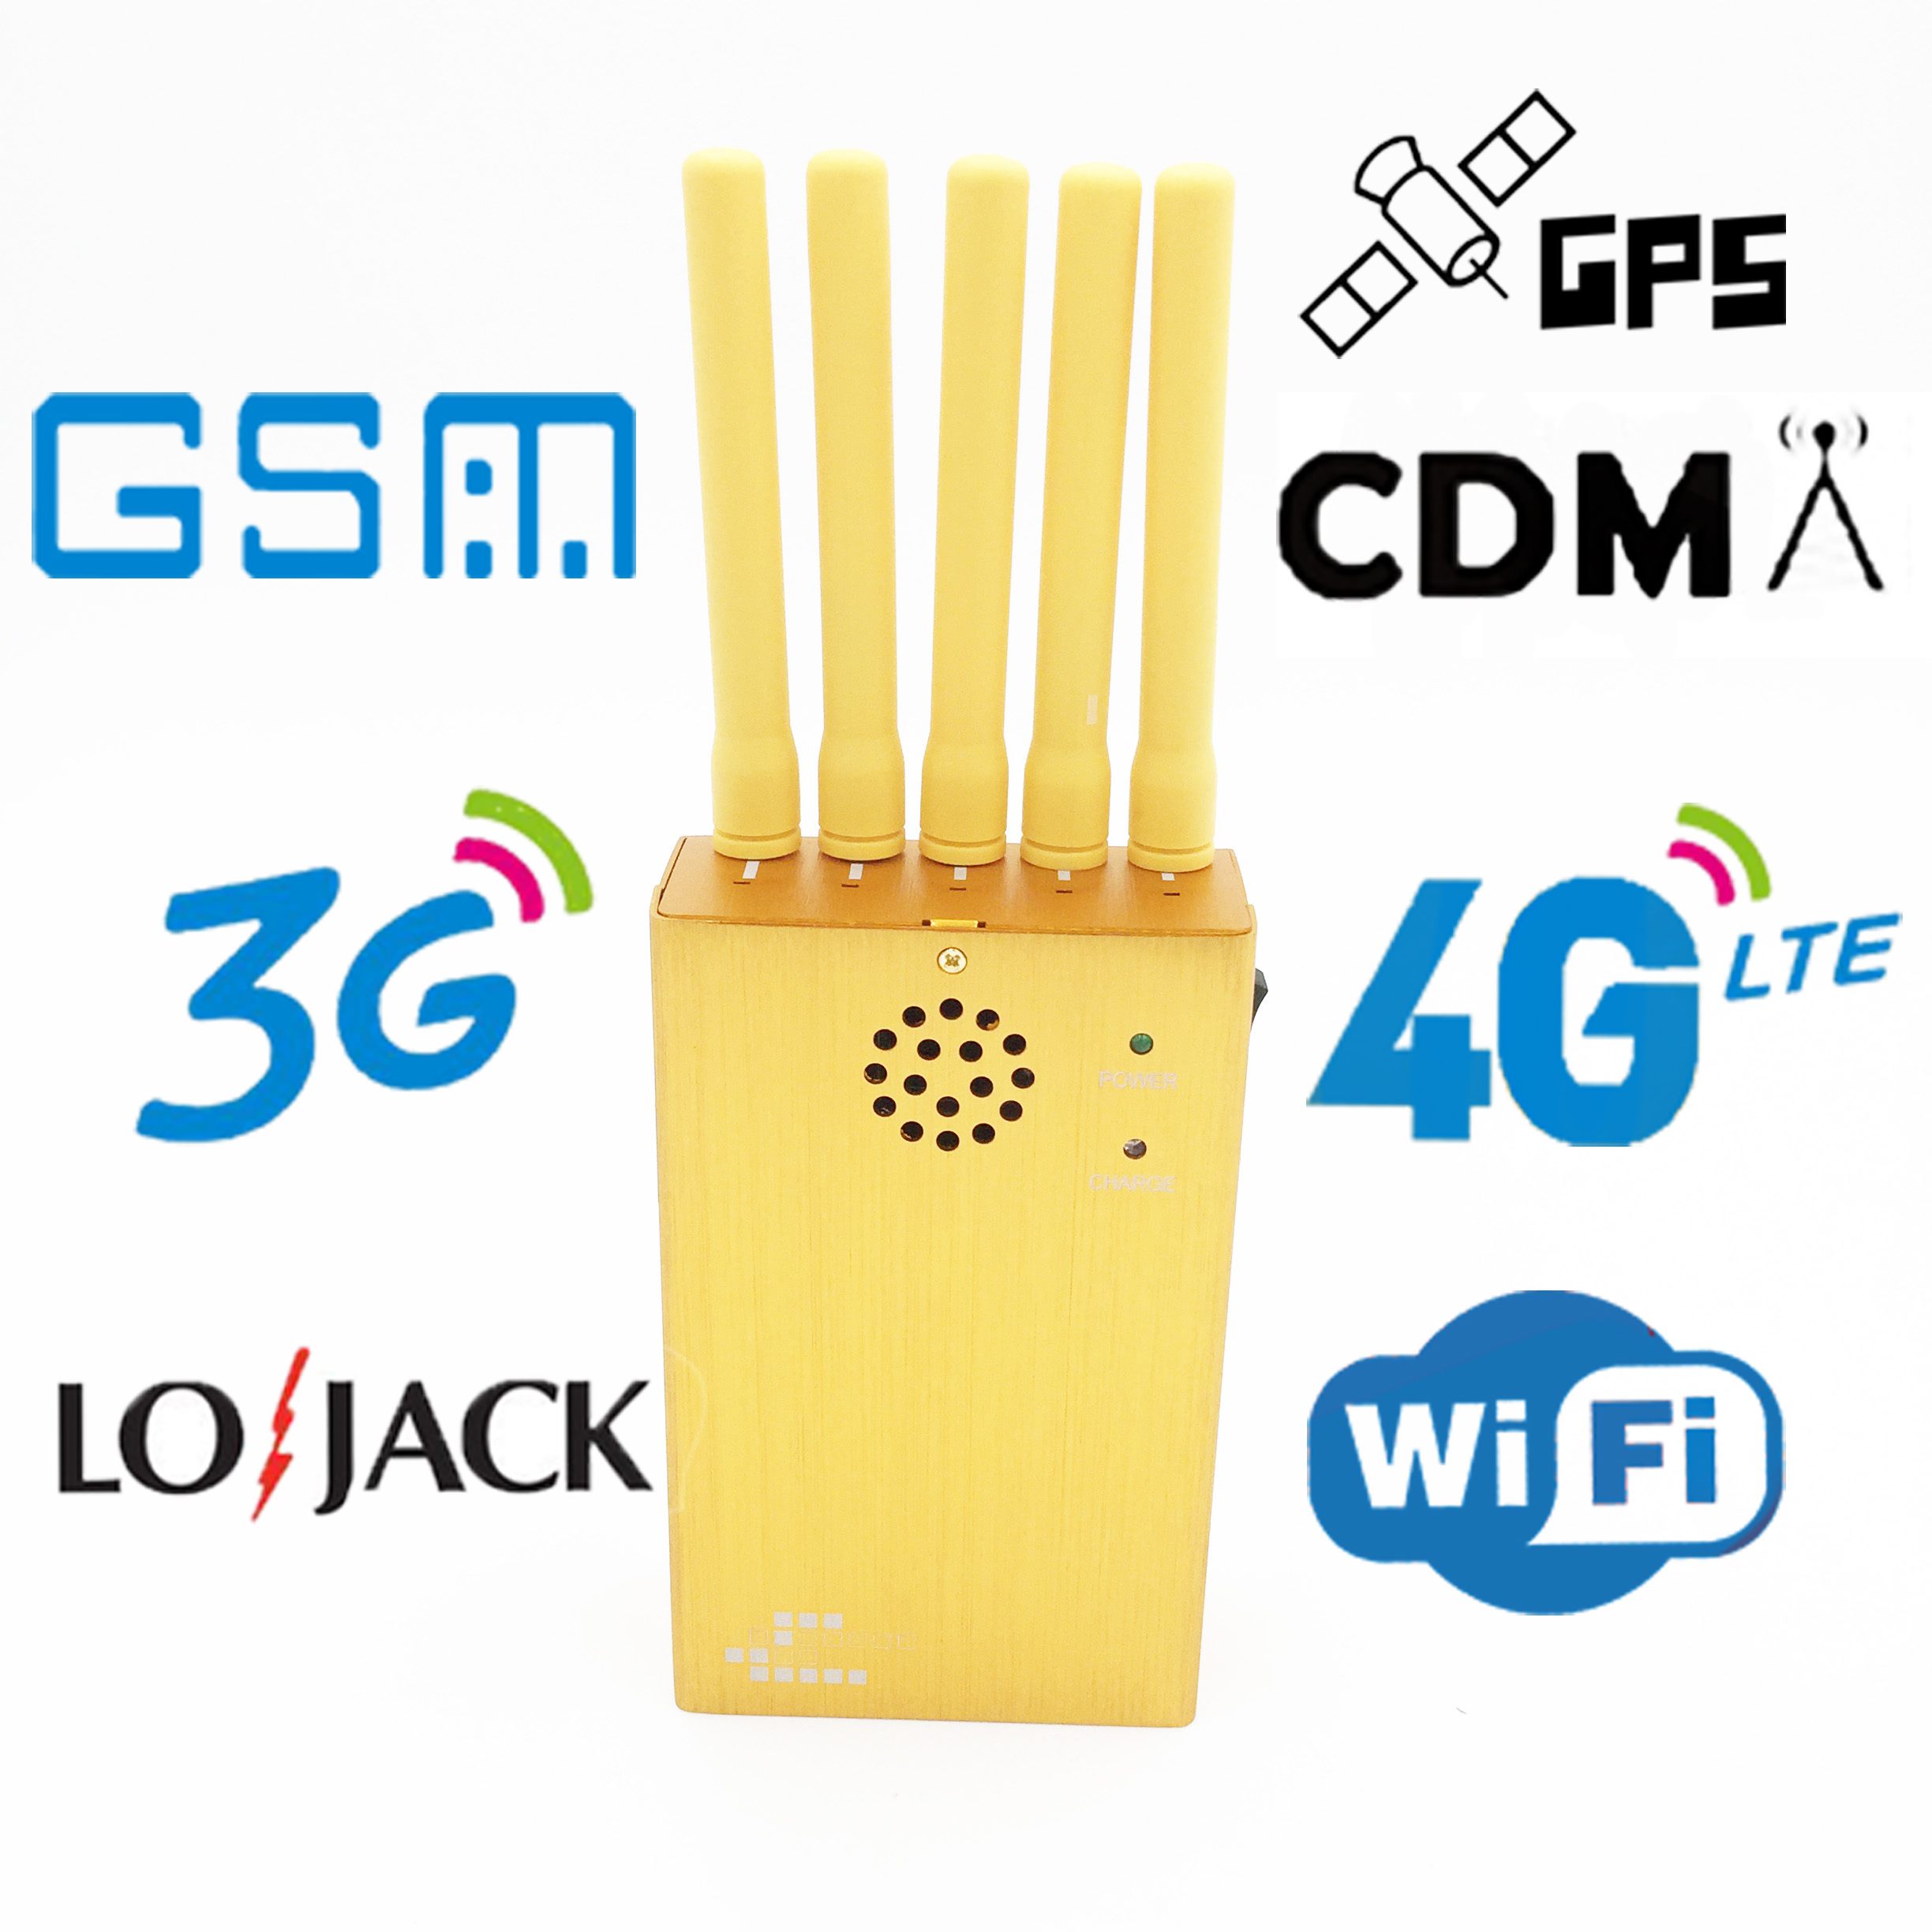 5 Antennas Handheld Cell Phone Isolator, Blcok 2G/3G/4G or LOJACK GPS WIFI Signals, Coverage: 20m (JAX-121B-5) Gold